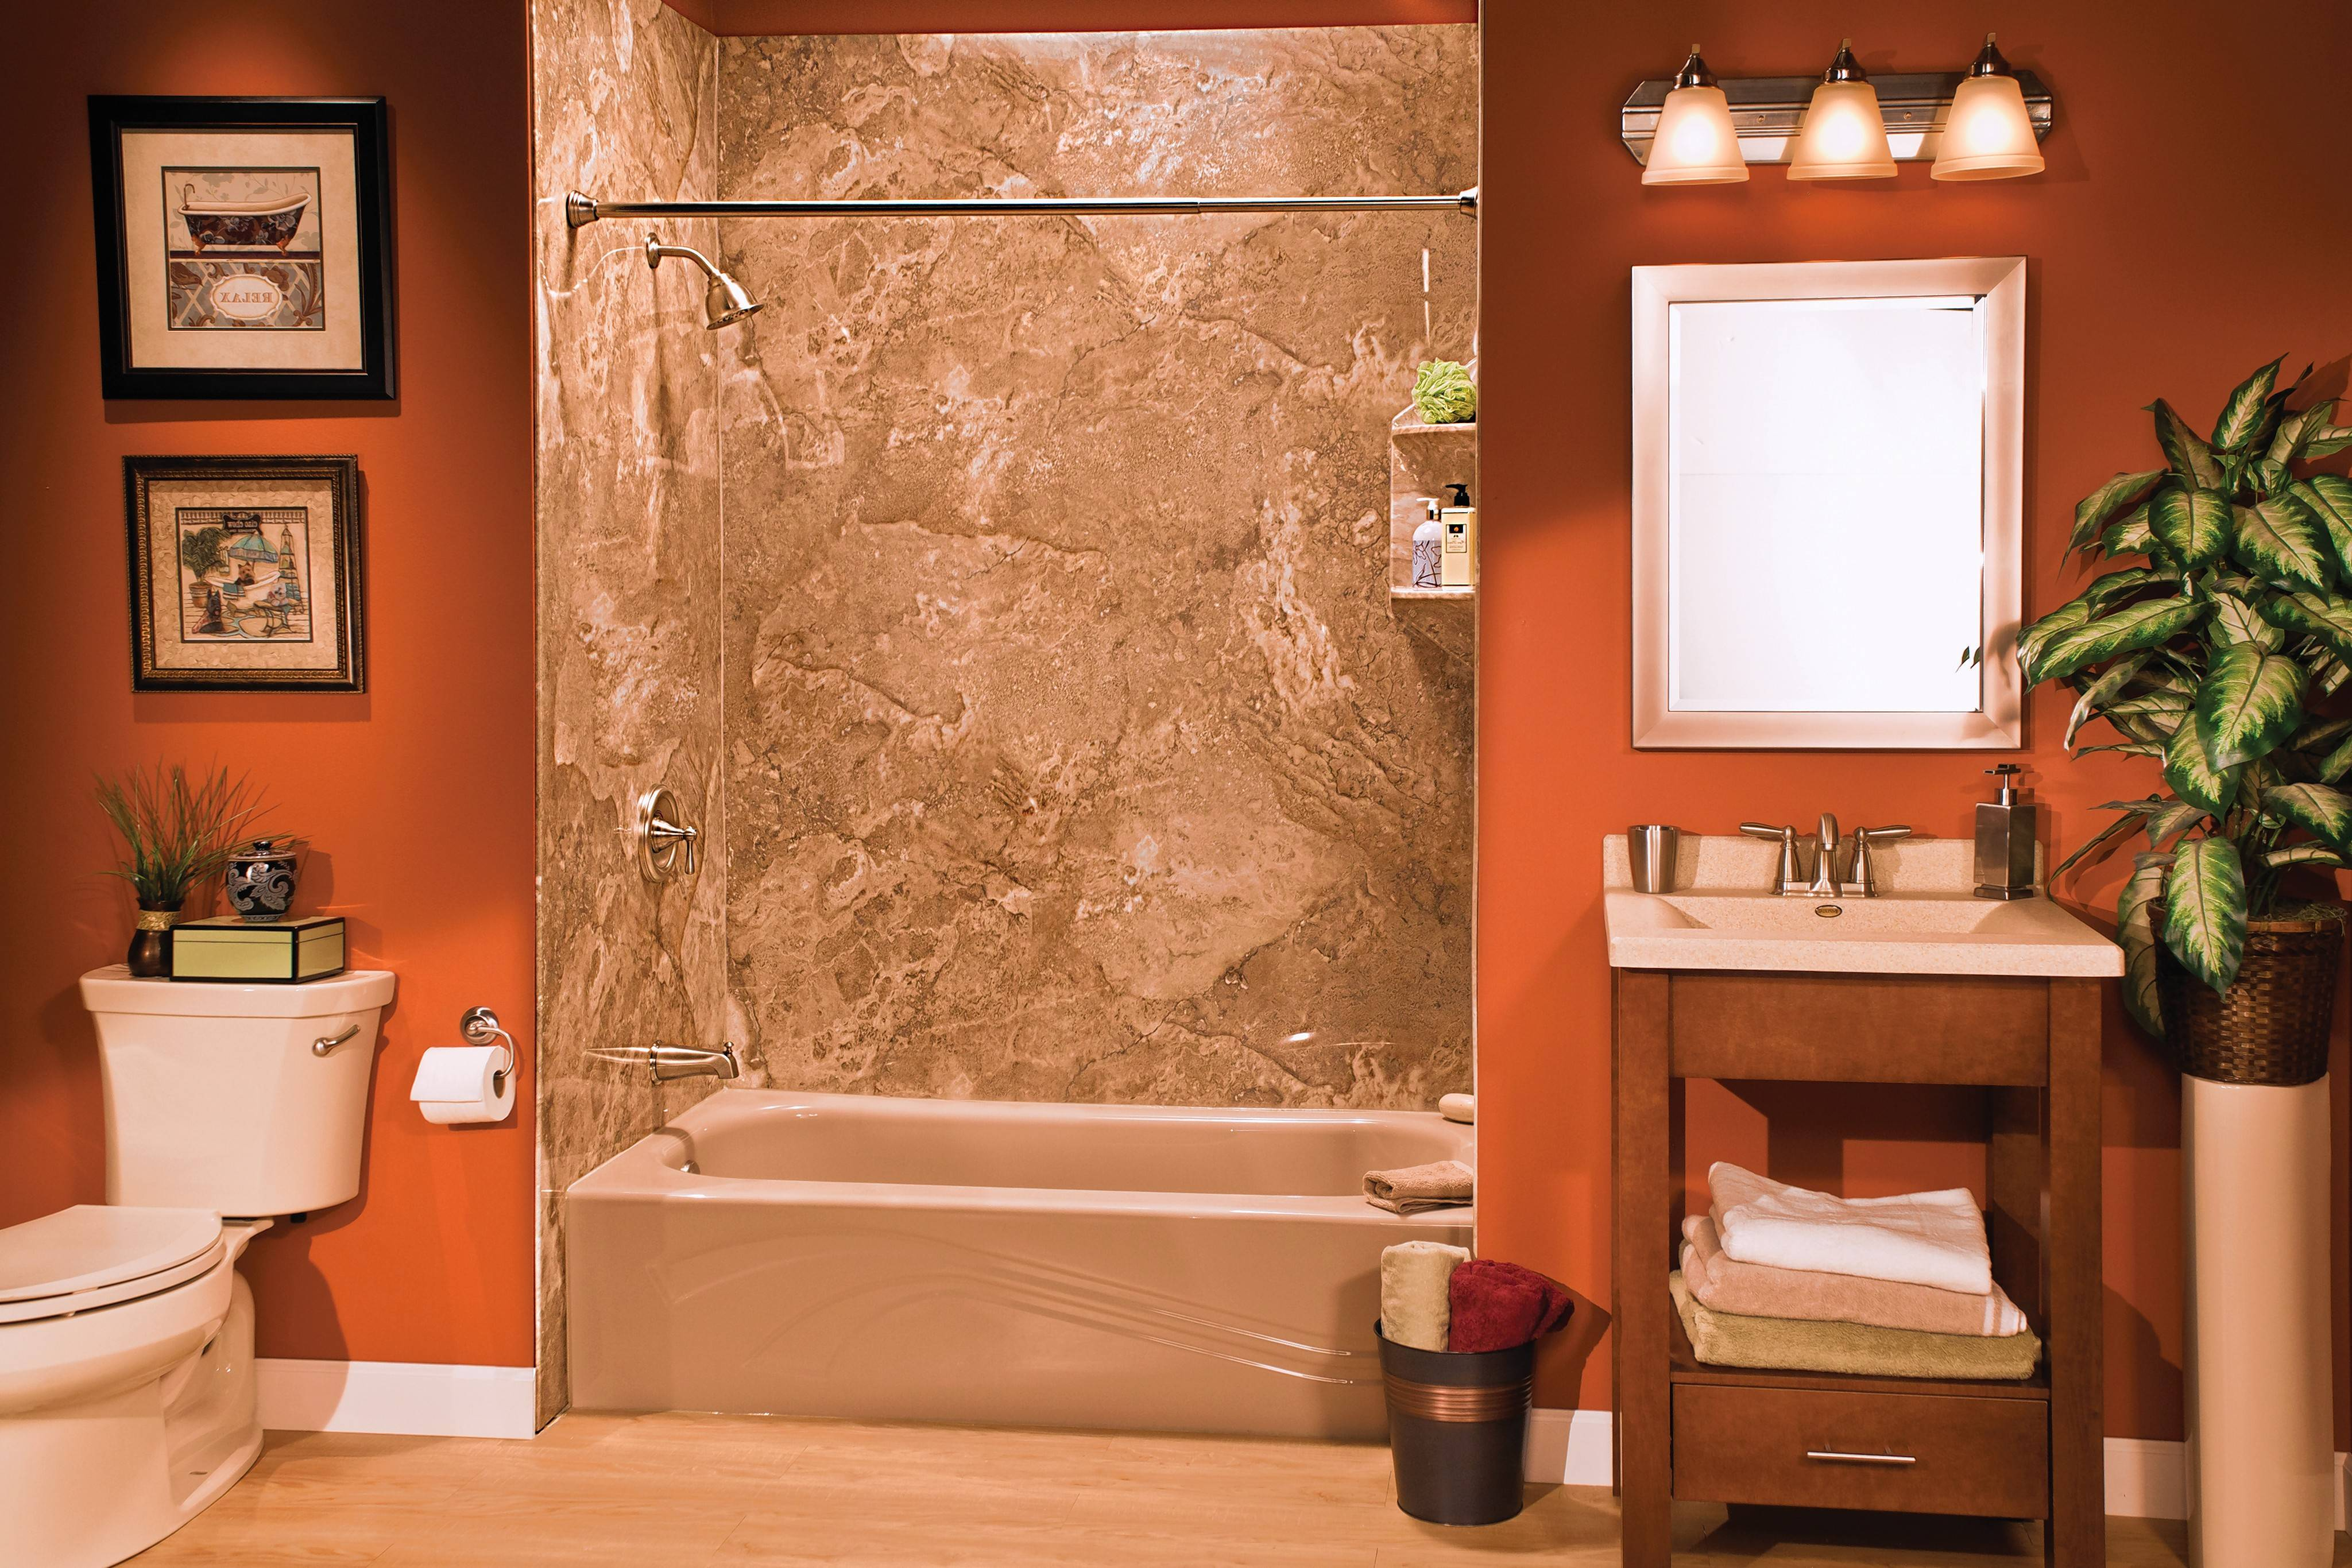 Bath Planet's acrylic products feature the elegant look of ceramic tile, granite or marble.